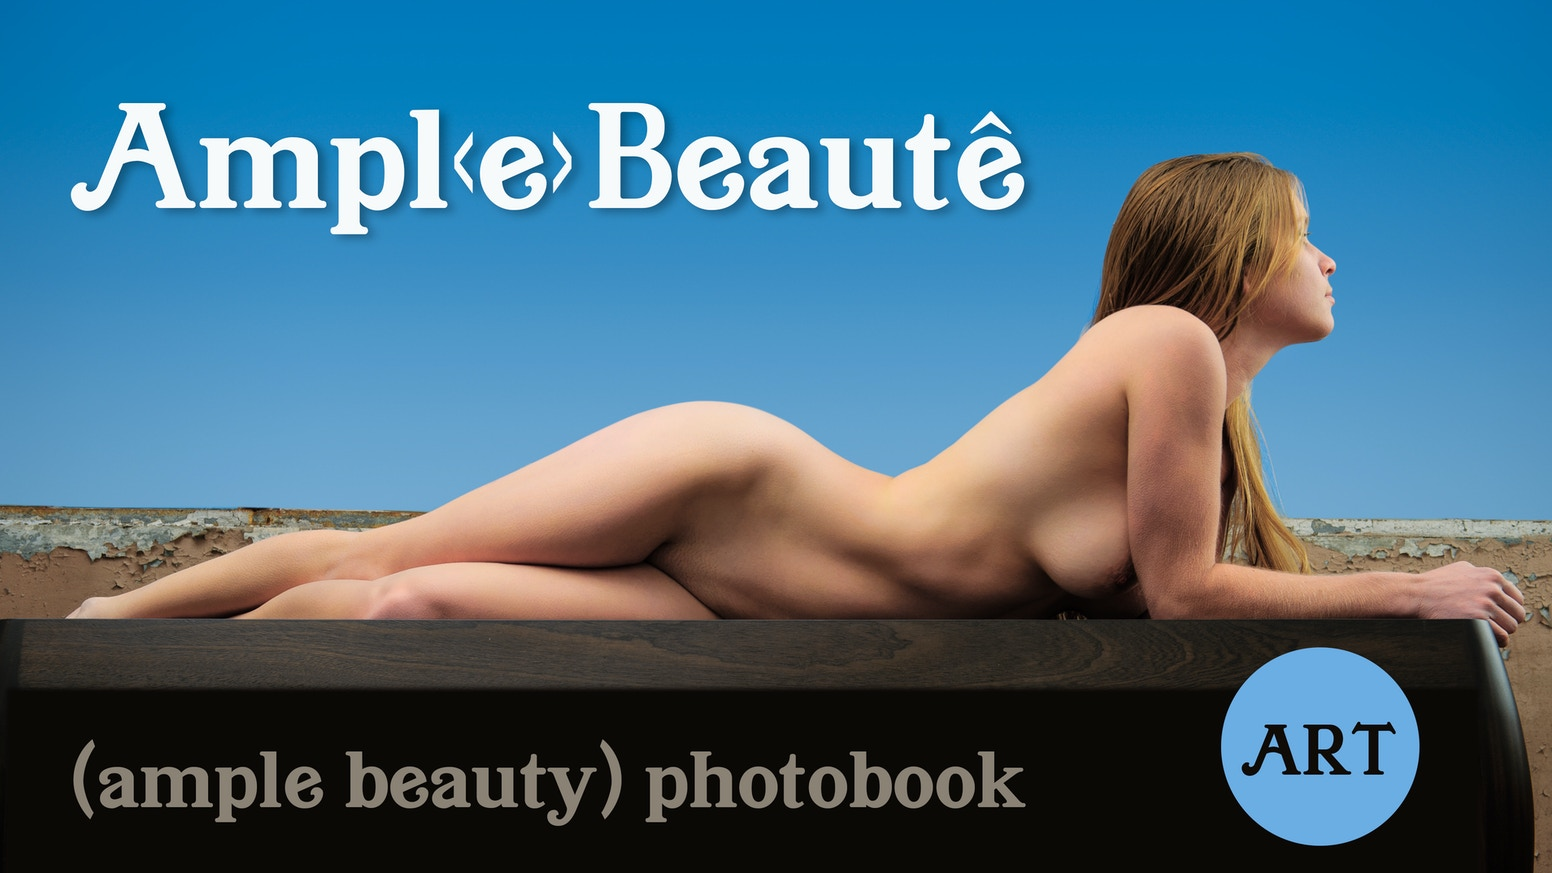 Art nude photobook autographed hardcover, collector cards, album; an homage to classic pin-up, stylized color, and distinct aesthetic.